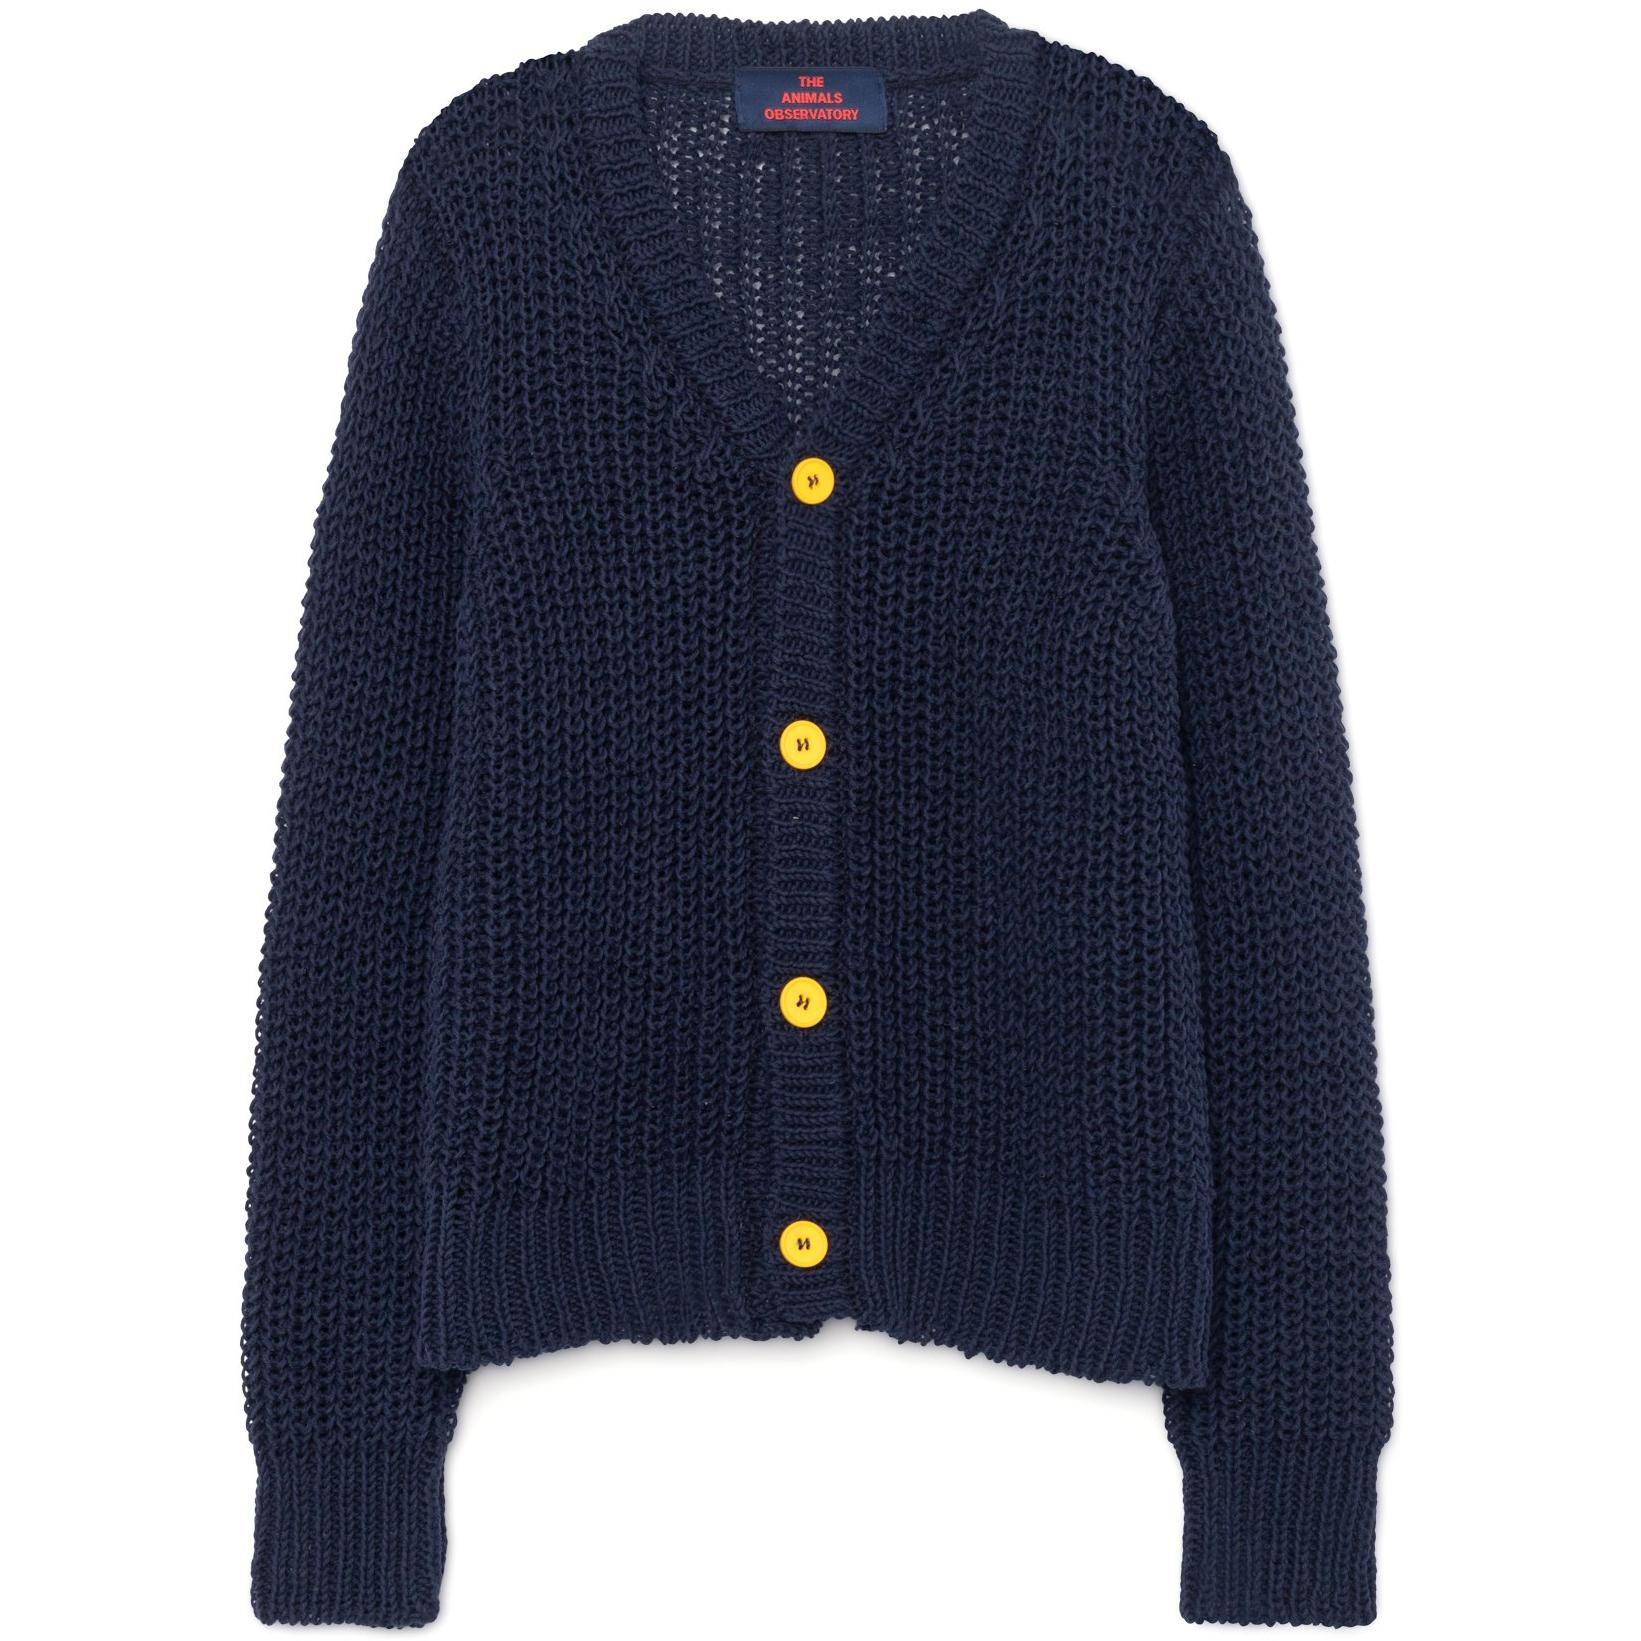 Kids The Animals Observatory plain raccoon kids cardigan navy blue